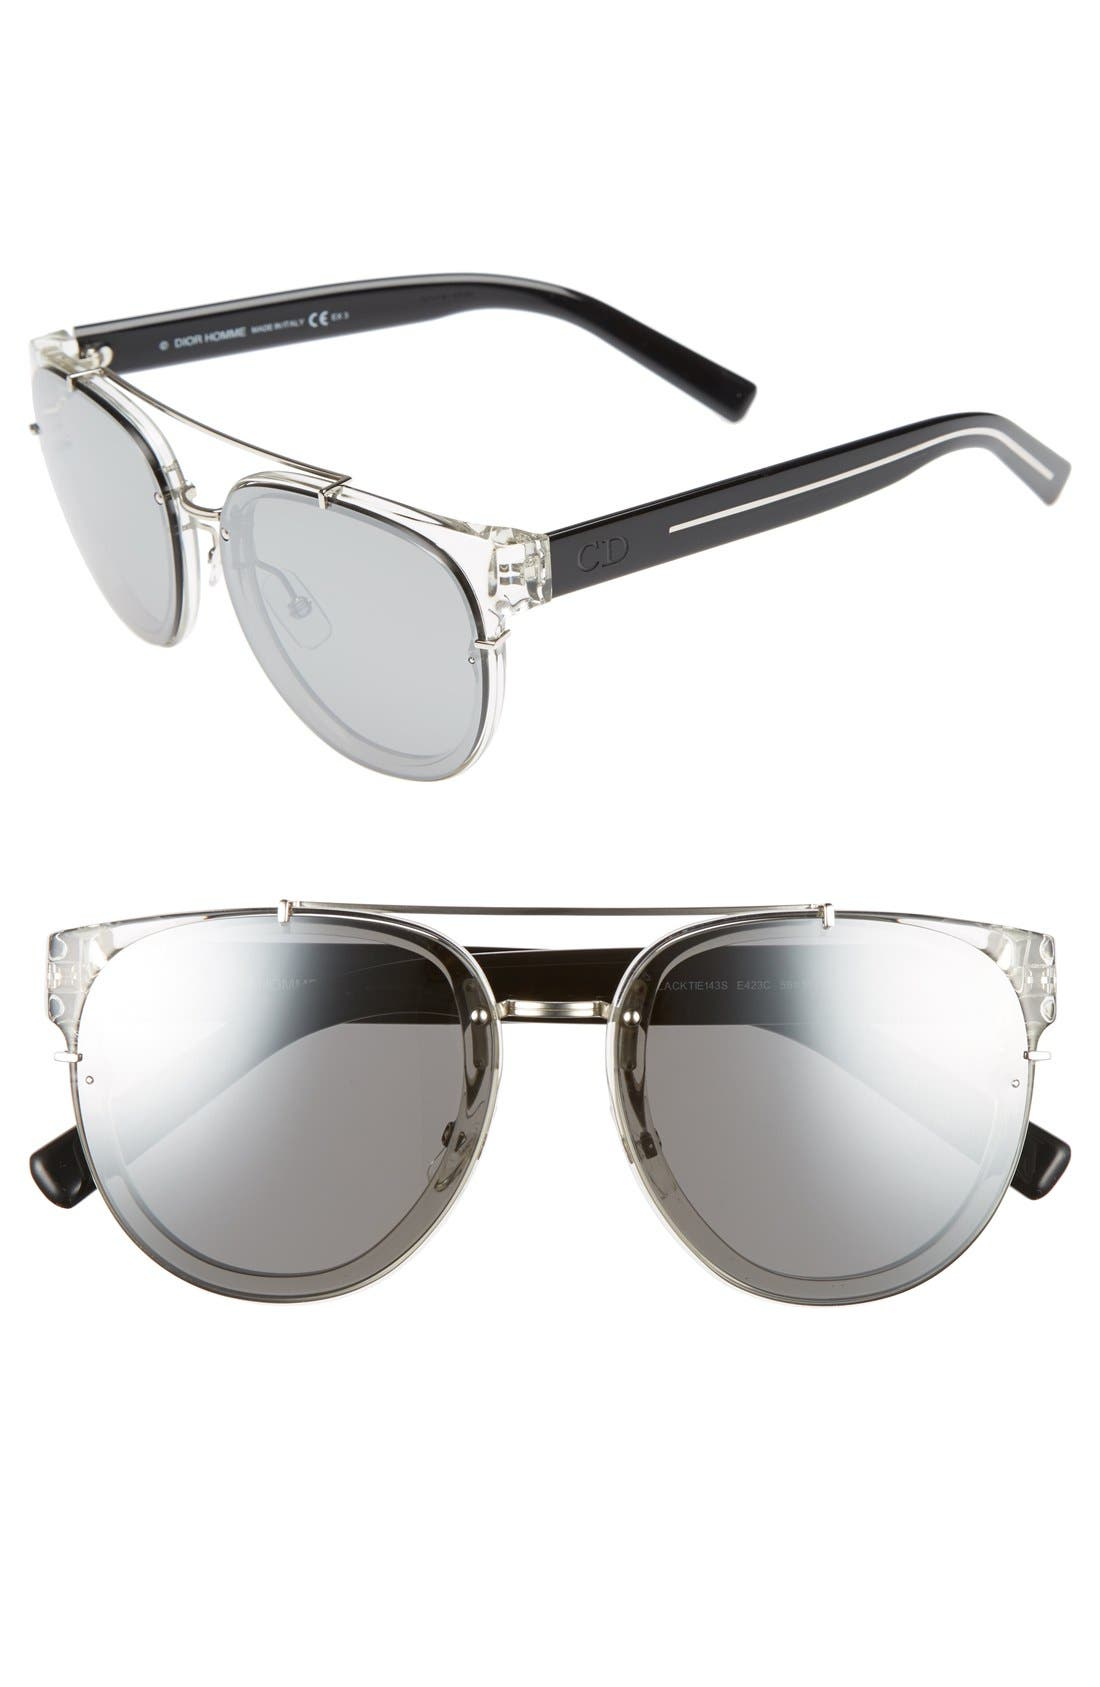 Dior Homme 'Black Tie' 56mm Sunglasses